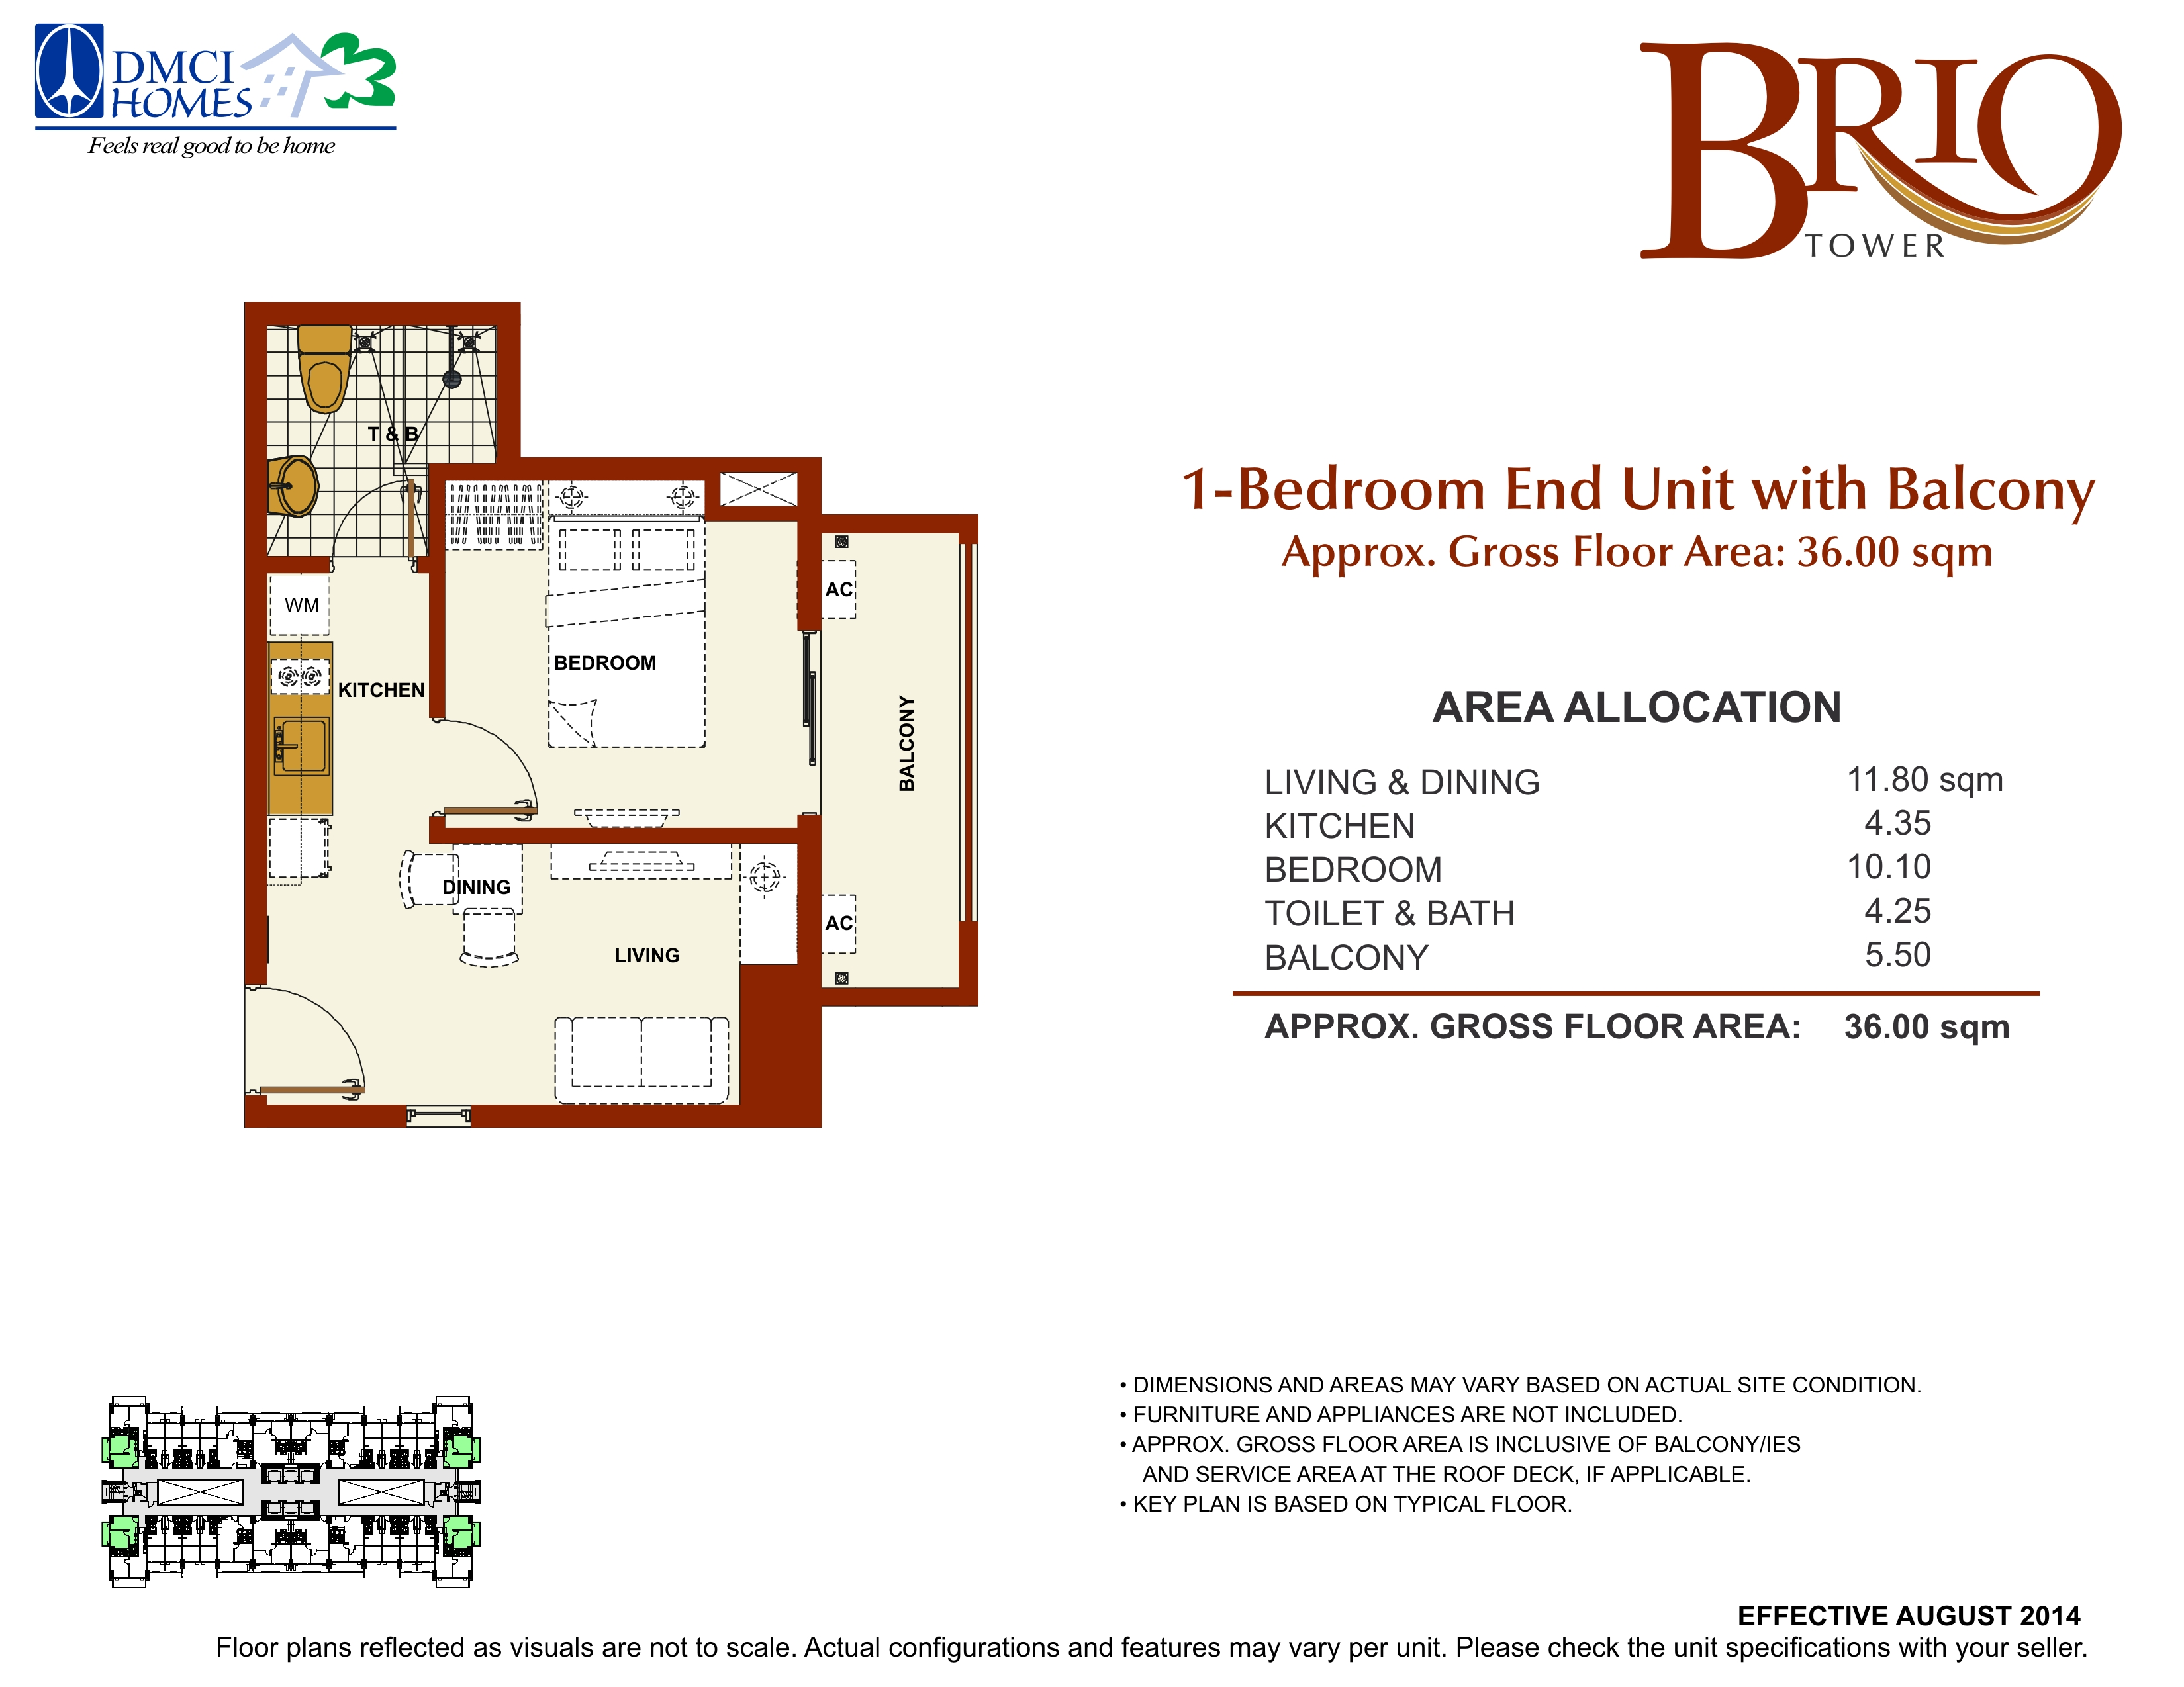 brio-tower-1br-end-unit-with-balcony-2